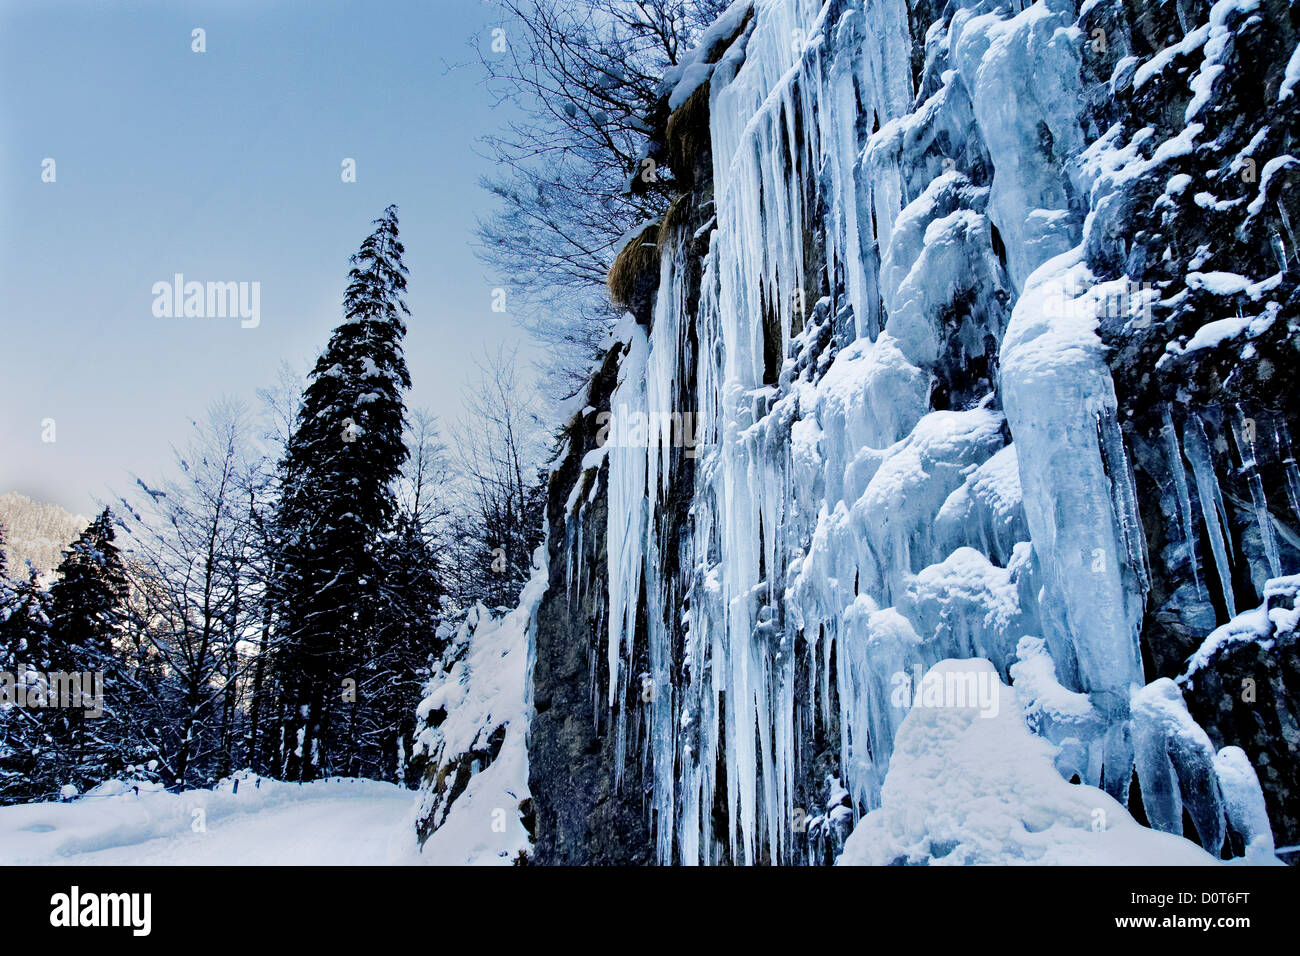 Ice, icicle, Emmental, cliff wall, spruce, frost, canton Bern, Kemmeriboden, scenery, nature, Picea abies, spruce, - Stock Image